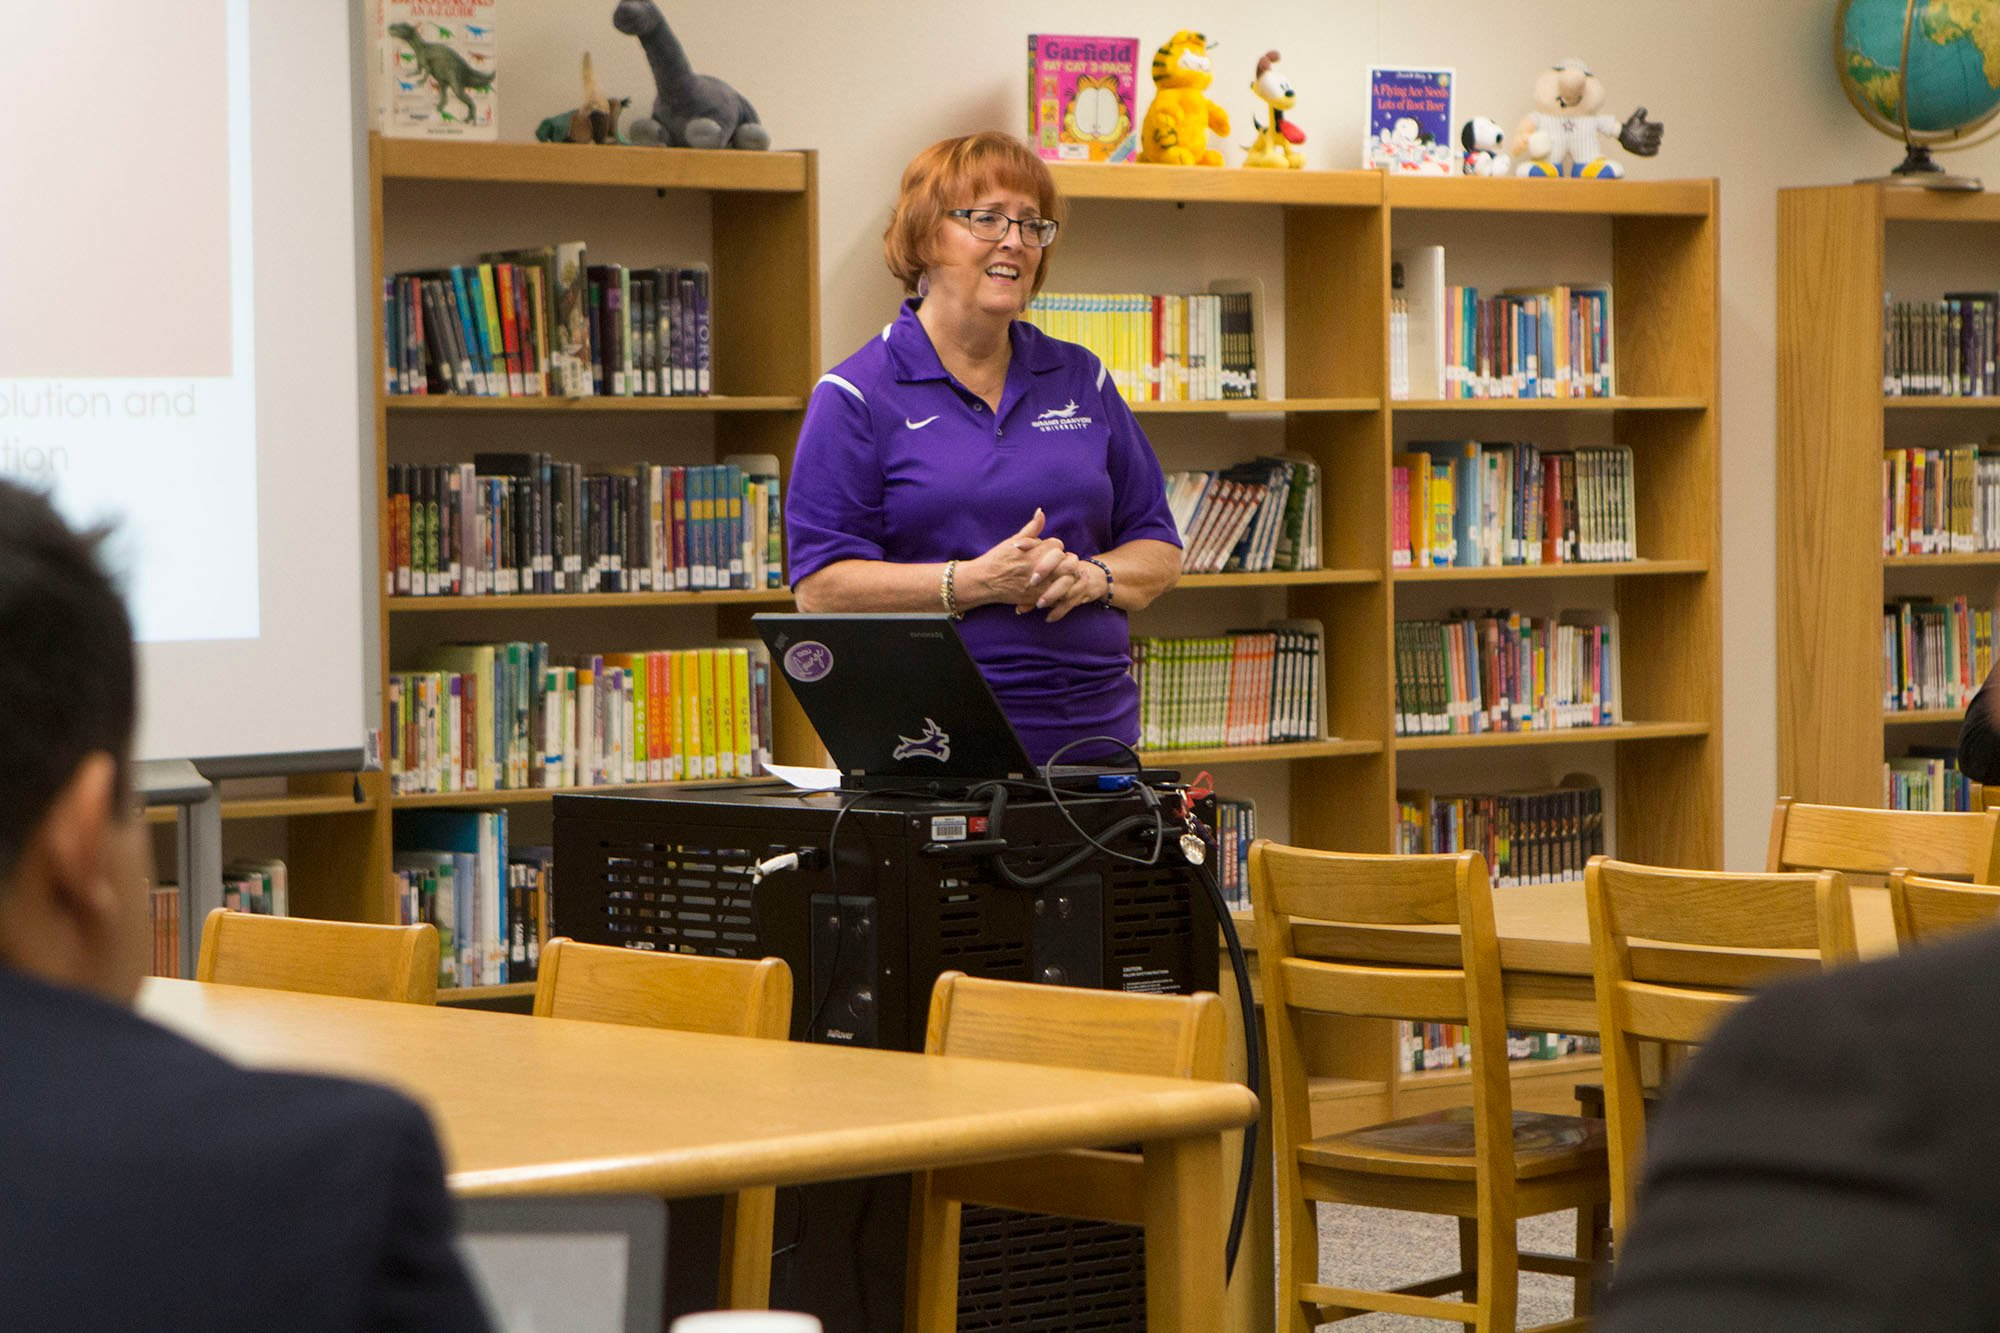 Jennifer Johnson discussed stress and conflict for school principals and superintendents at a session at Mountain Shadows Elementary School. (Photo by Paola Garcia/Cronkite News)